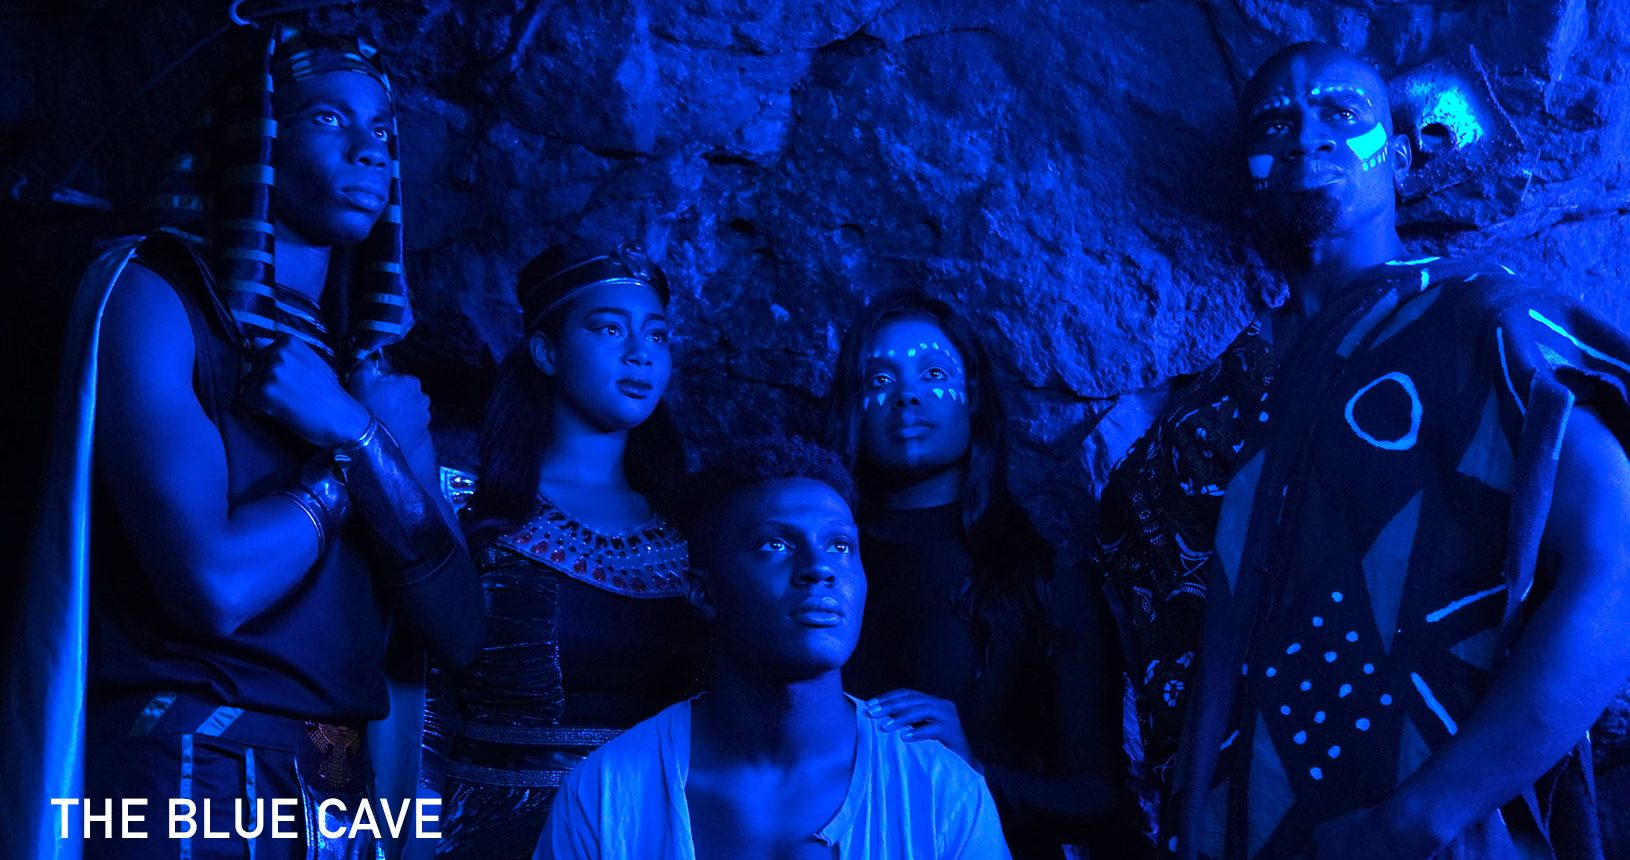 Film: The Blue Cave